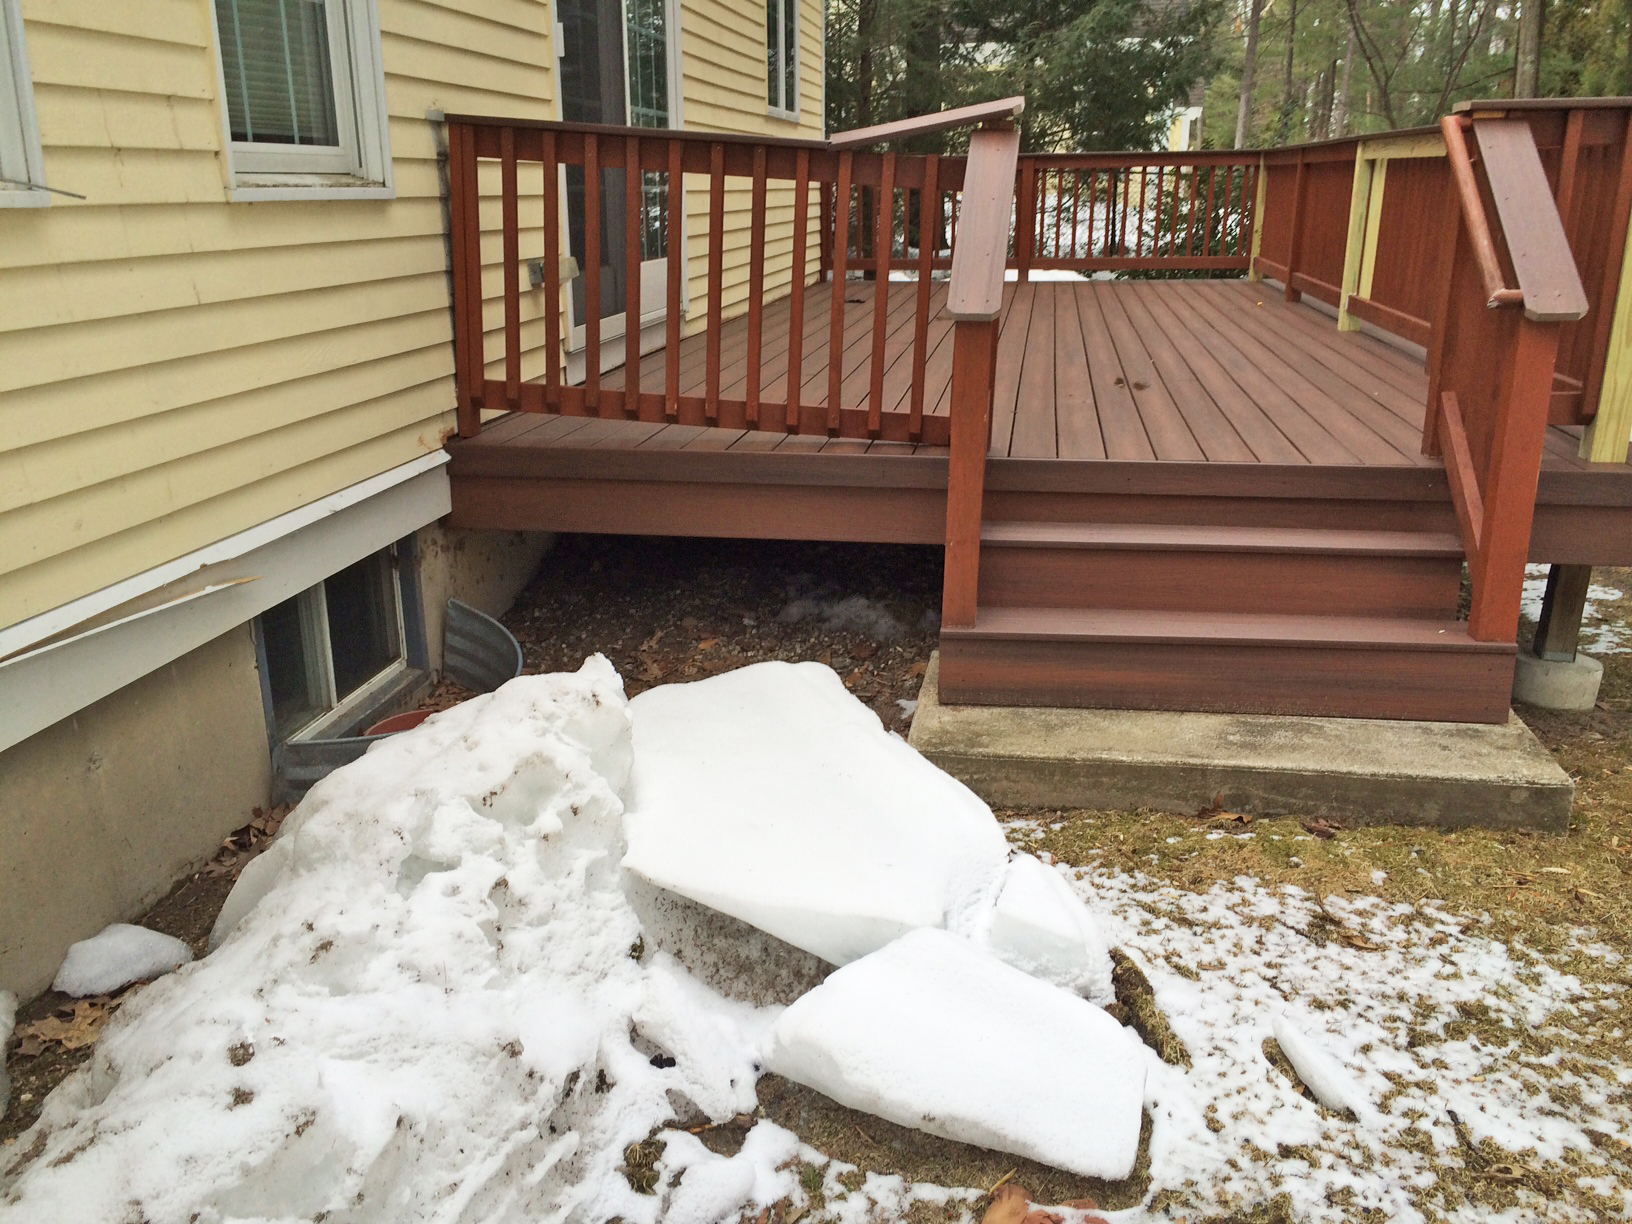 will snow damage my deck this winter? tips for clearing snow